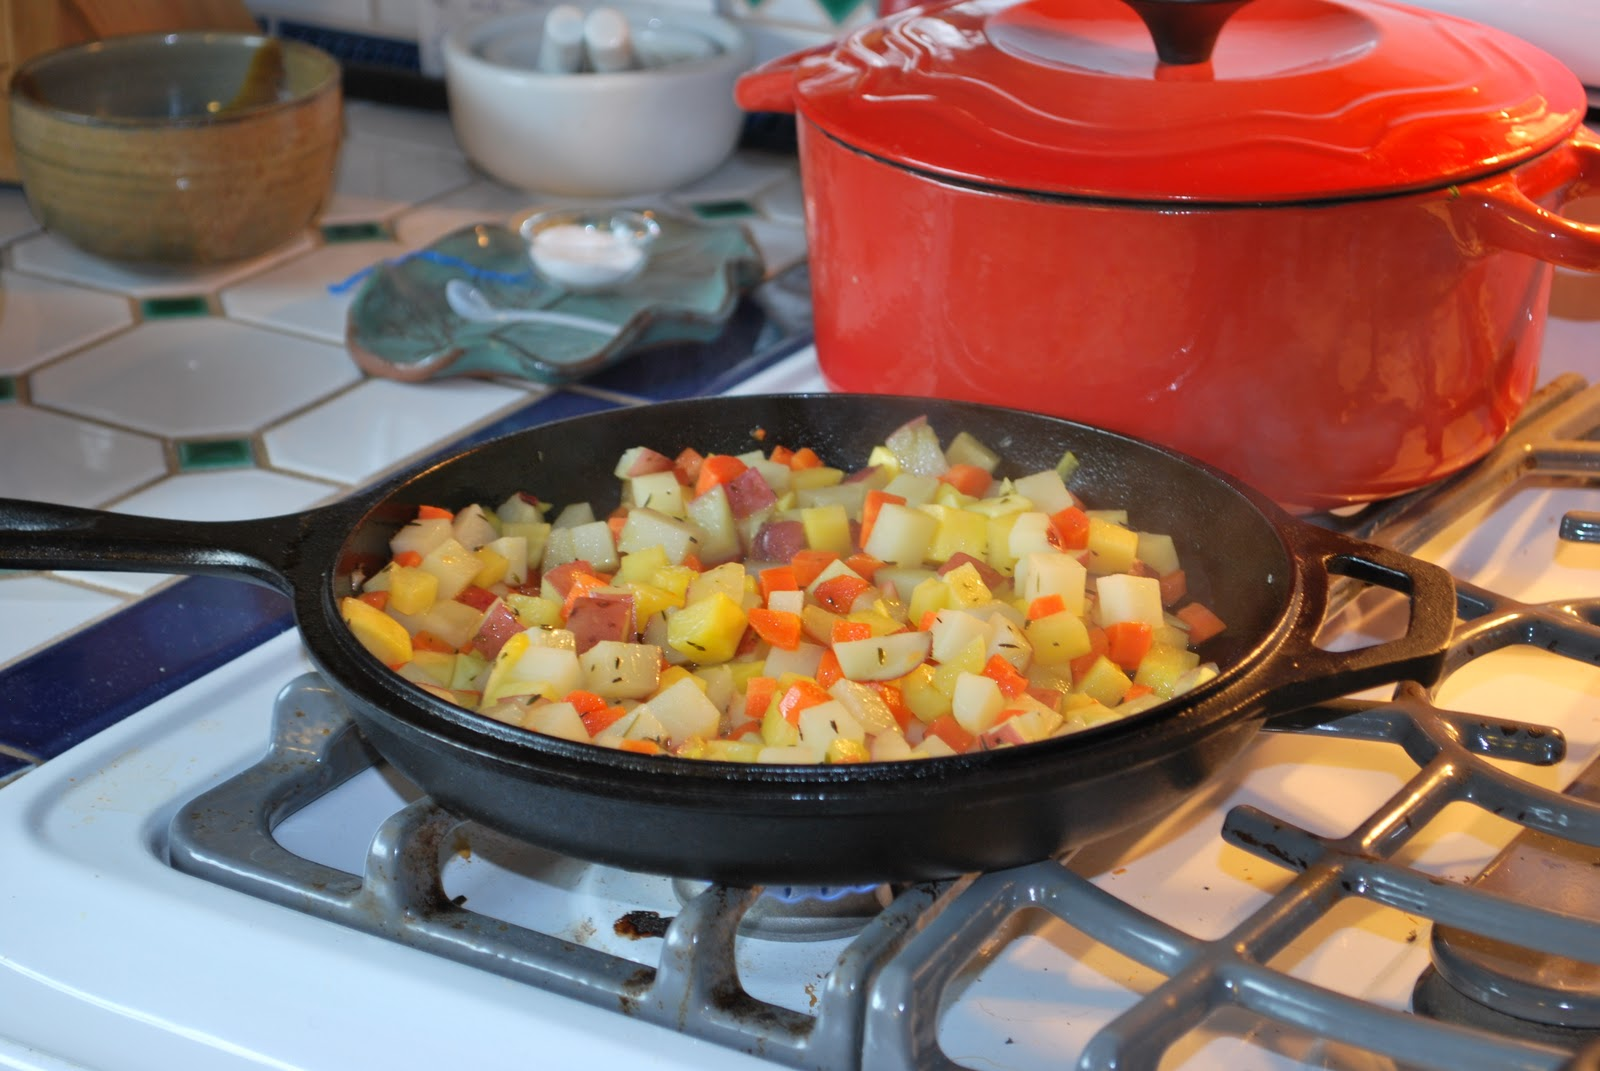 ... Turnips, Potatoes, Carrots with Onions & Thyme, and Black Bean Chili